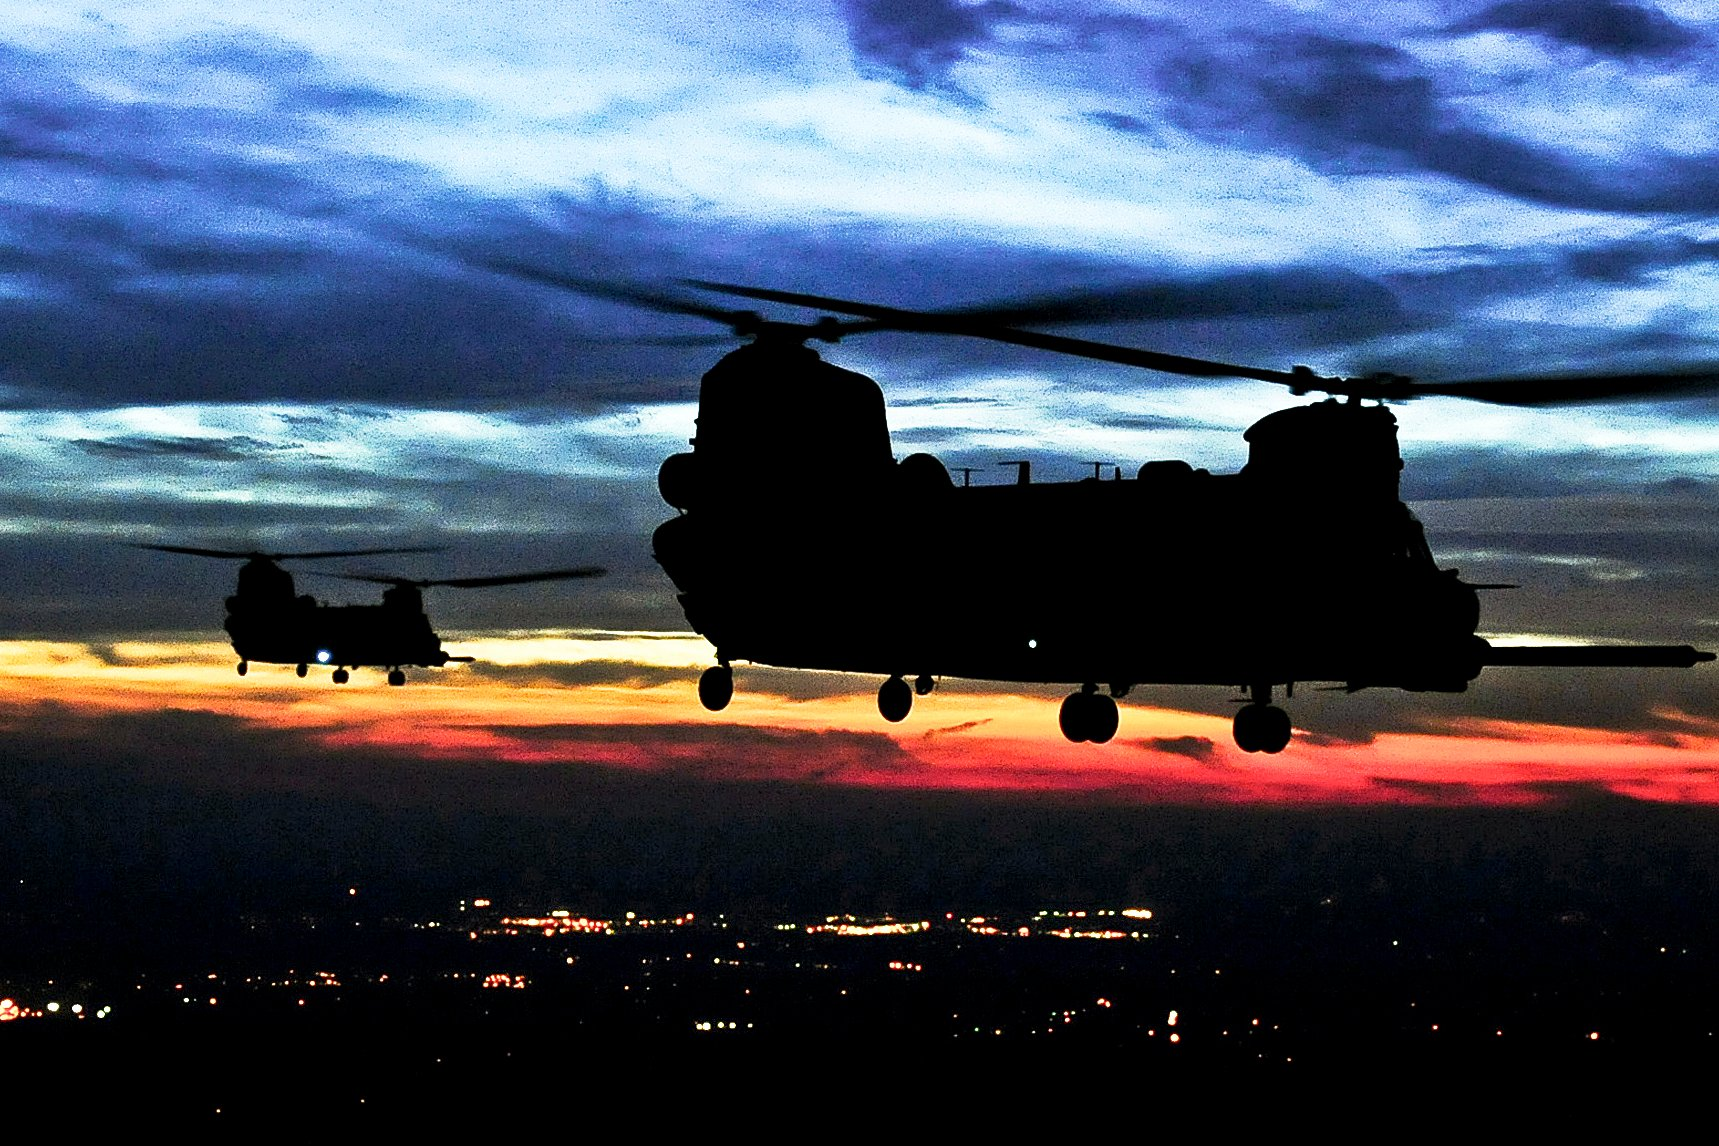 helicopters flying at dusk